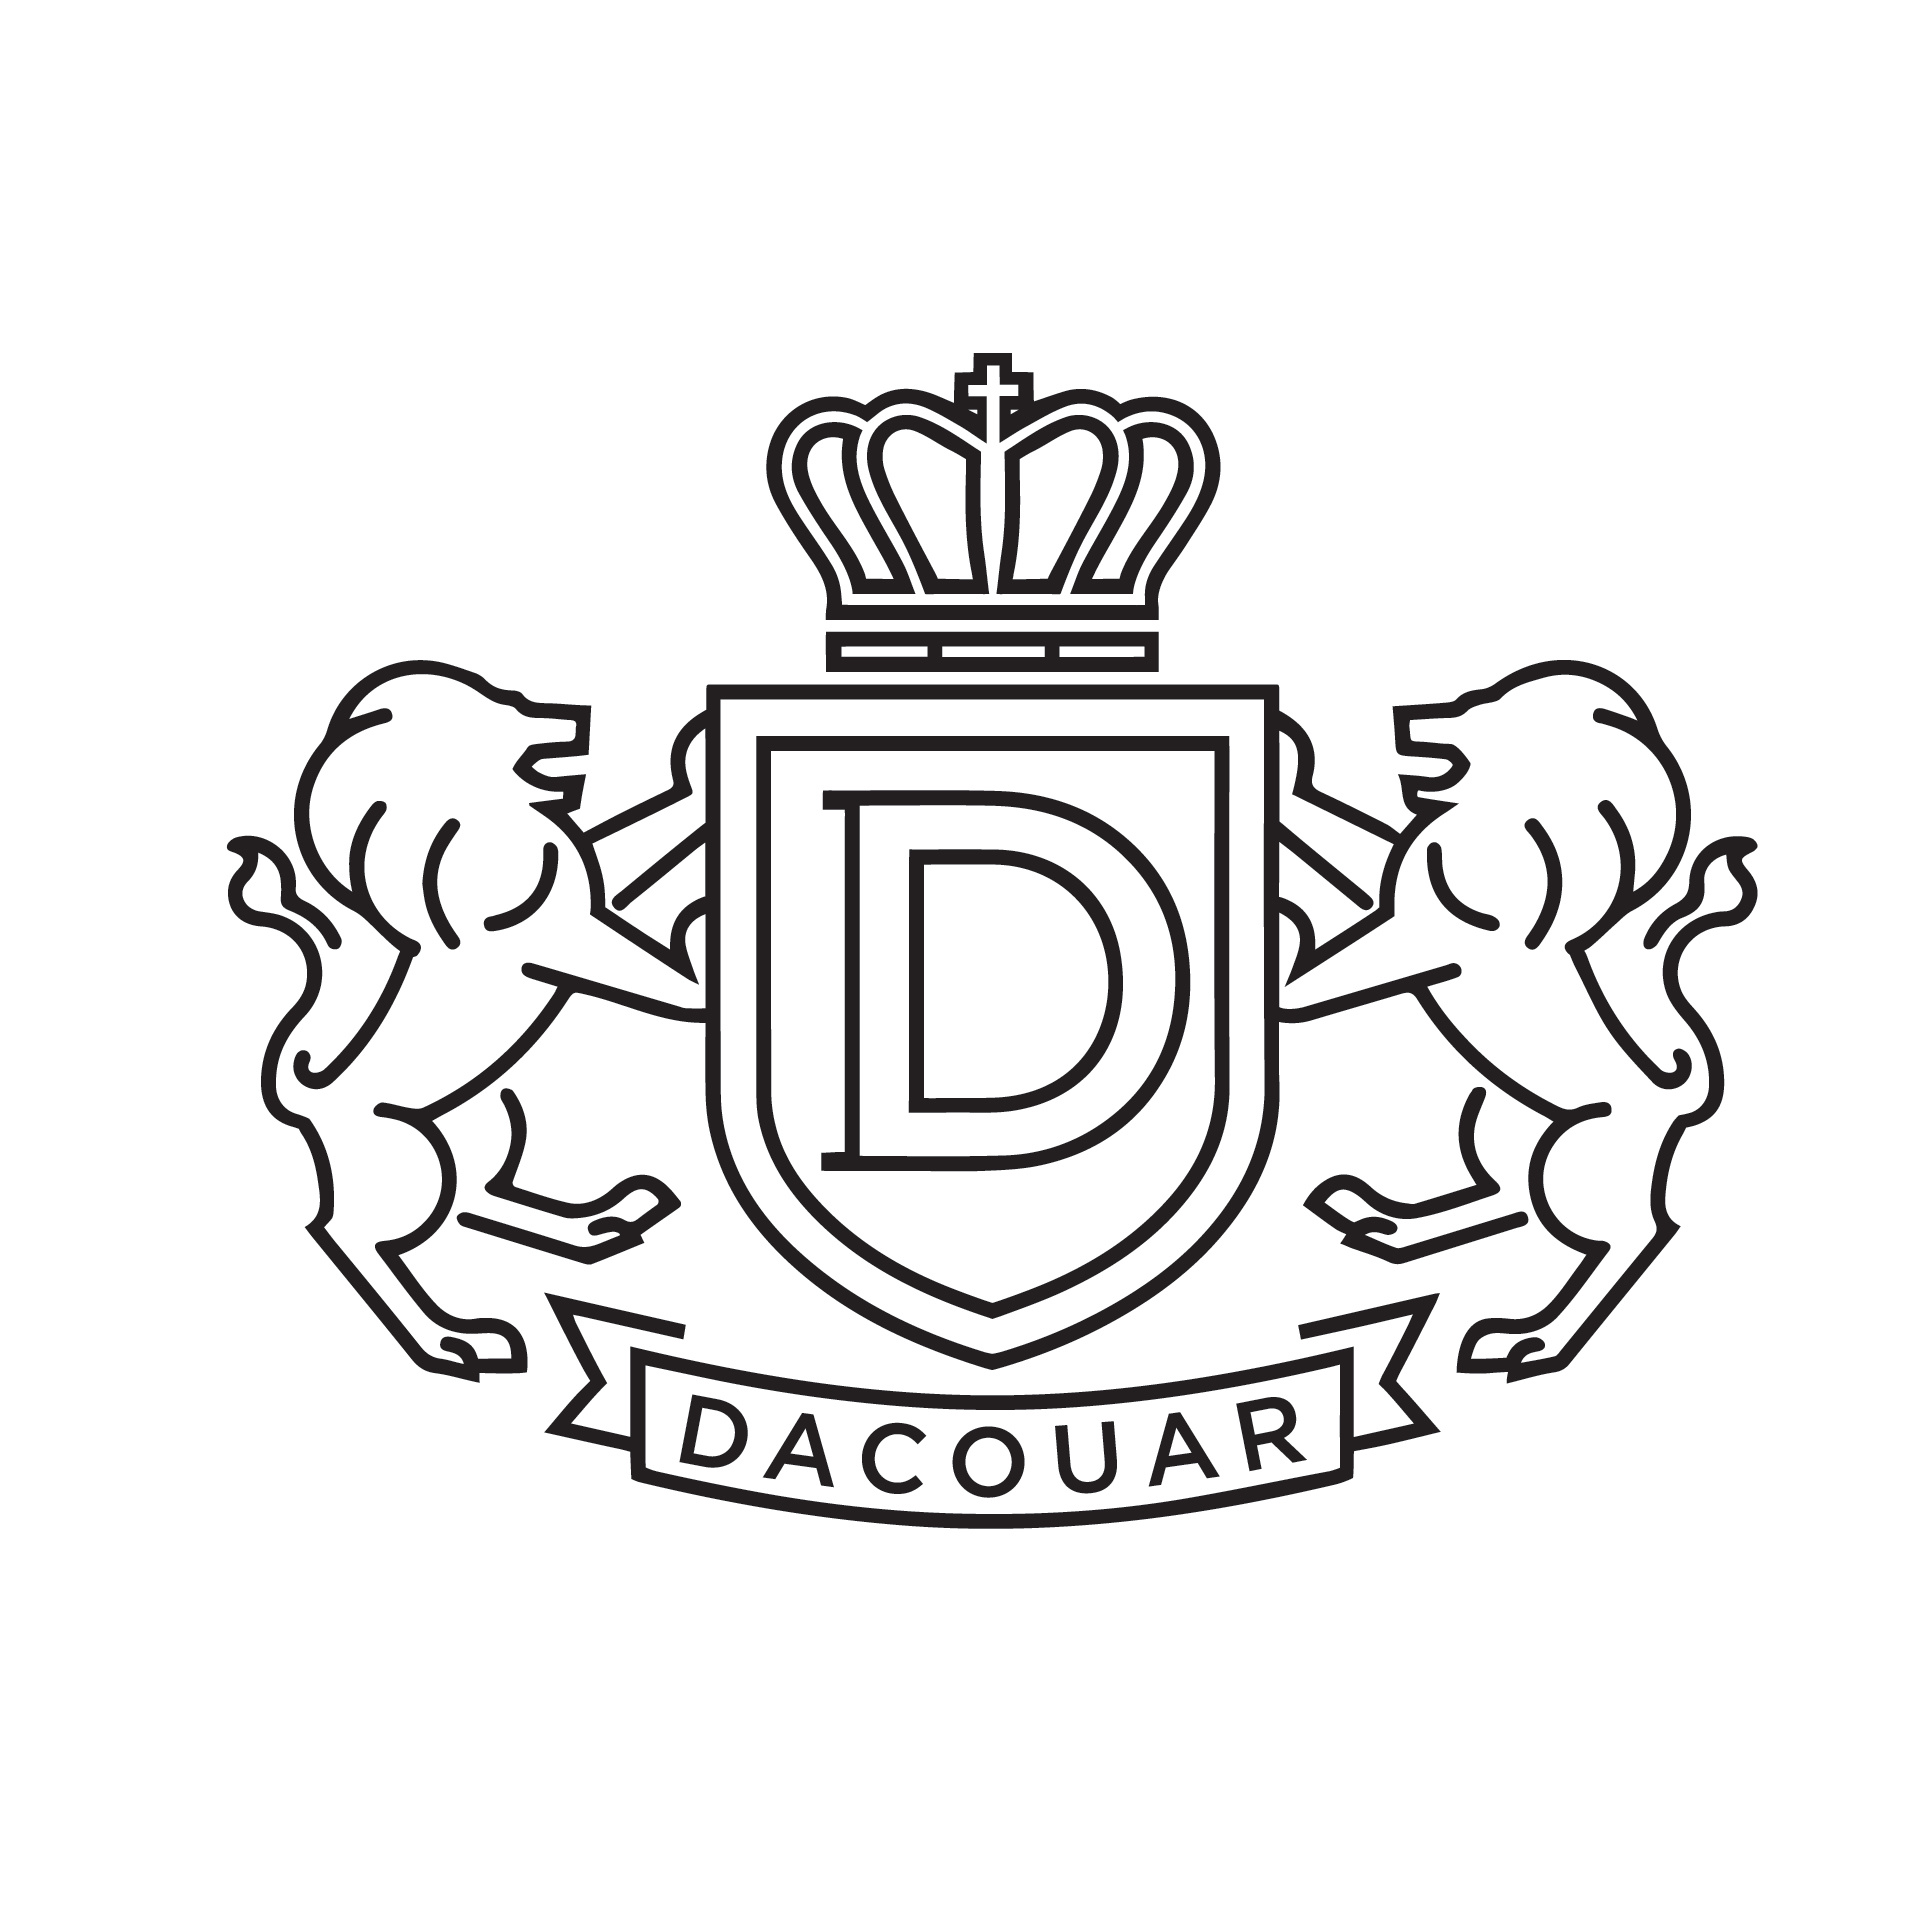 dacouar_logo-recreate_outlines (1)